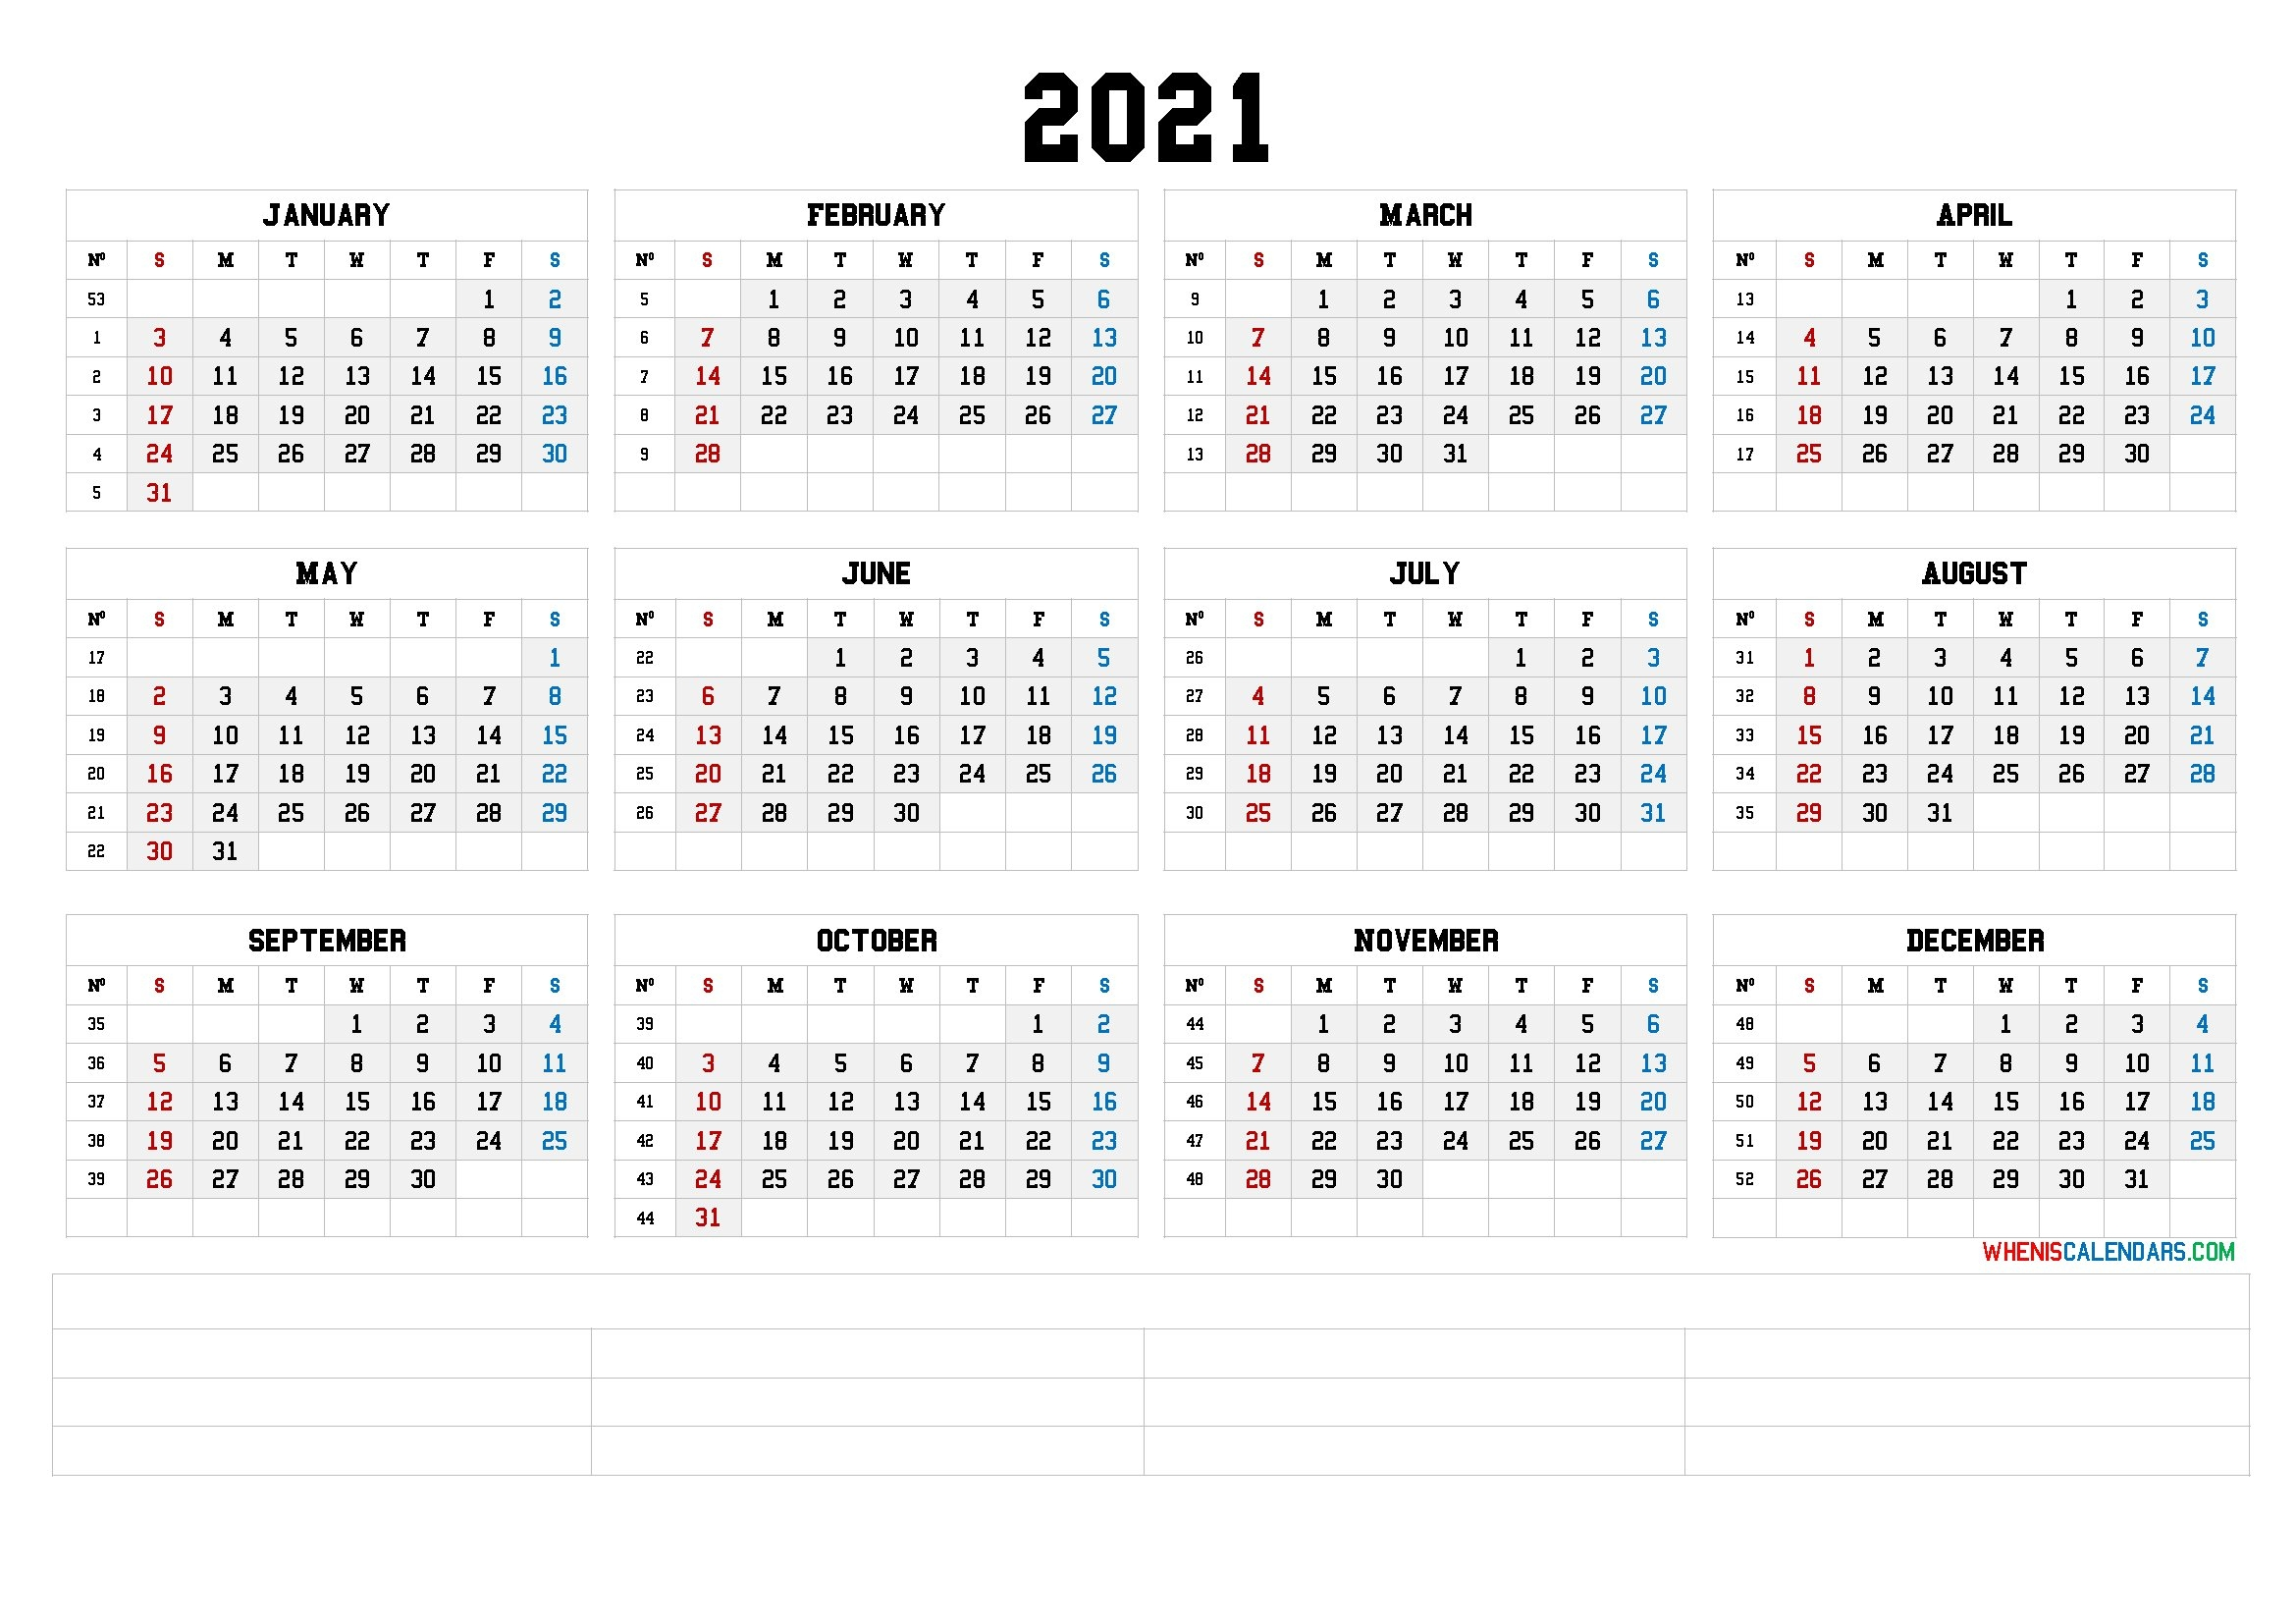 12 Month Calendar Printable 2021 (6 Templates) inside 2021 Calendar With Numbered Days Photo